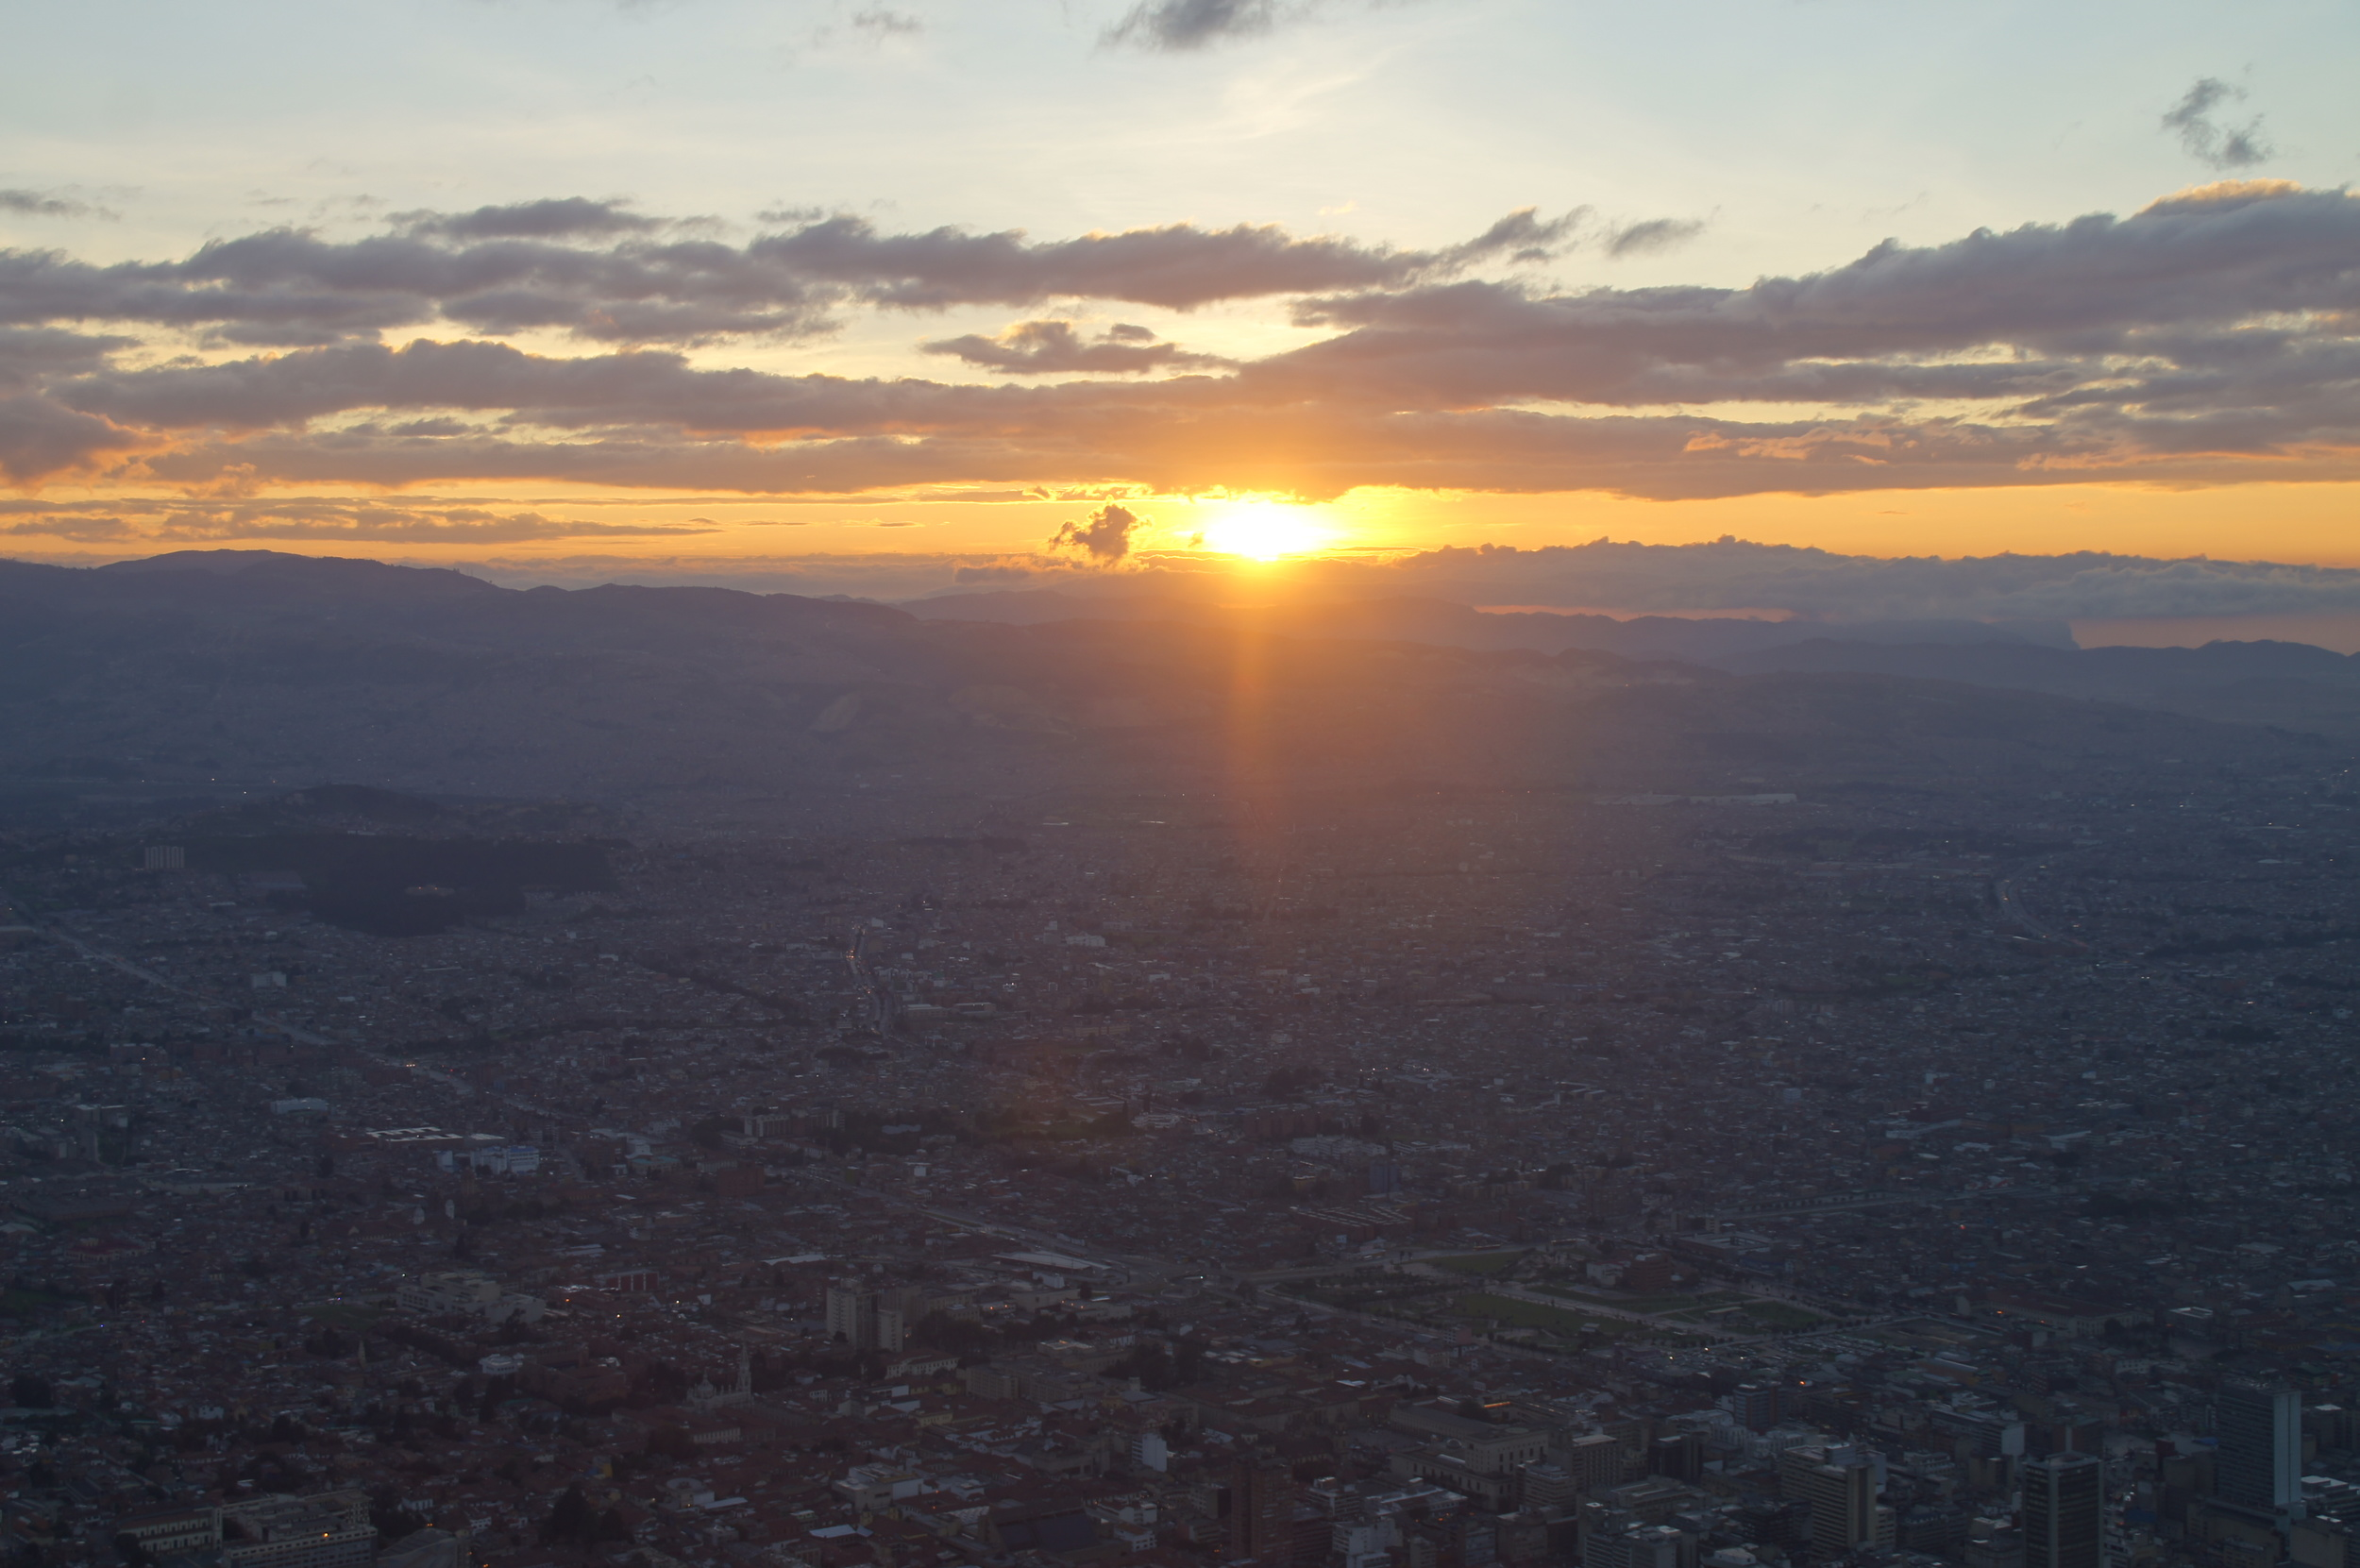 Sunset, Montserrate, Bogota. By Mitch Weisburg. Available    here